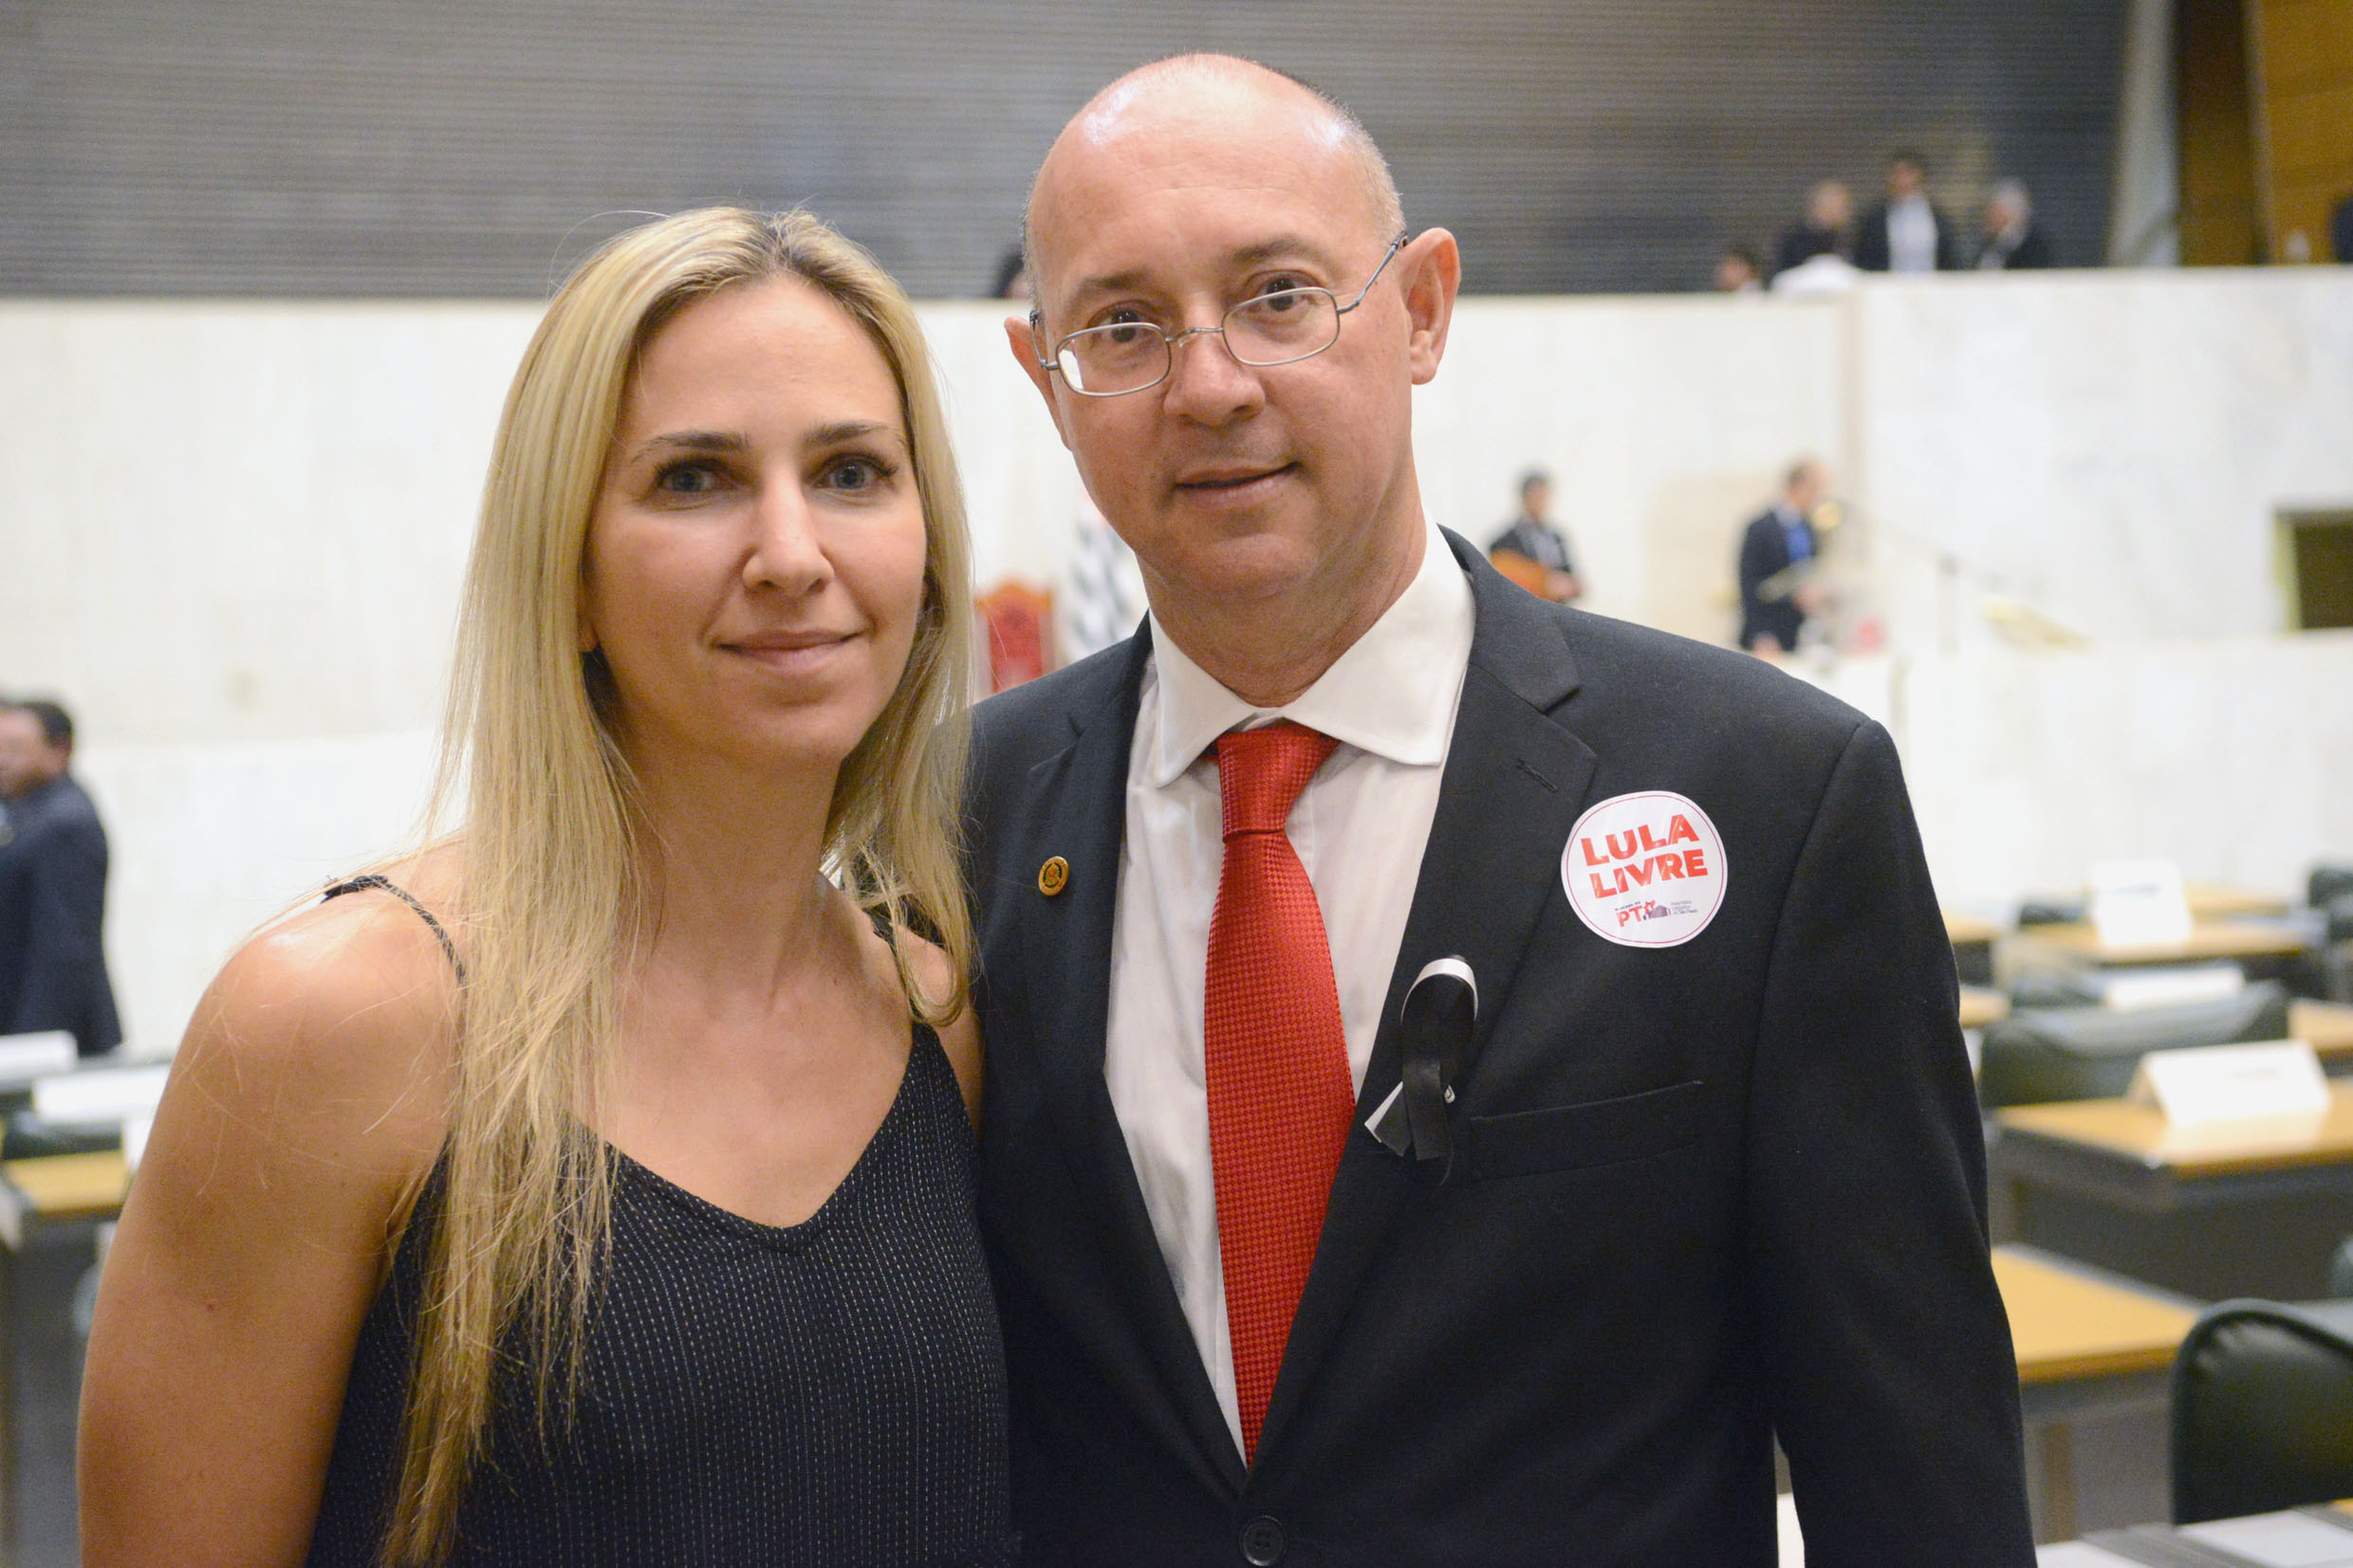 Paulo Fiorilo (à esq.)<a style='float:right' href='https://www3.al.sp.gov.br/repositorio/noticia/N-03-2019/fg231767.jpg' target=_blank><img src='/_img/material-file-download-white.png' width='14px' alt='Clique para baixar a imagem'></a>